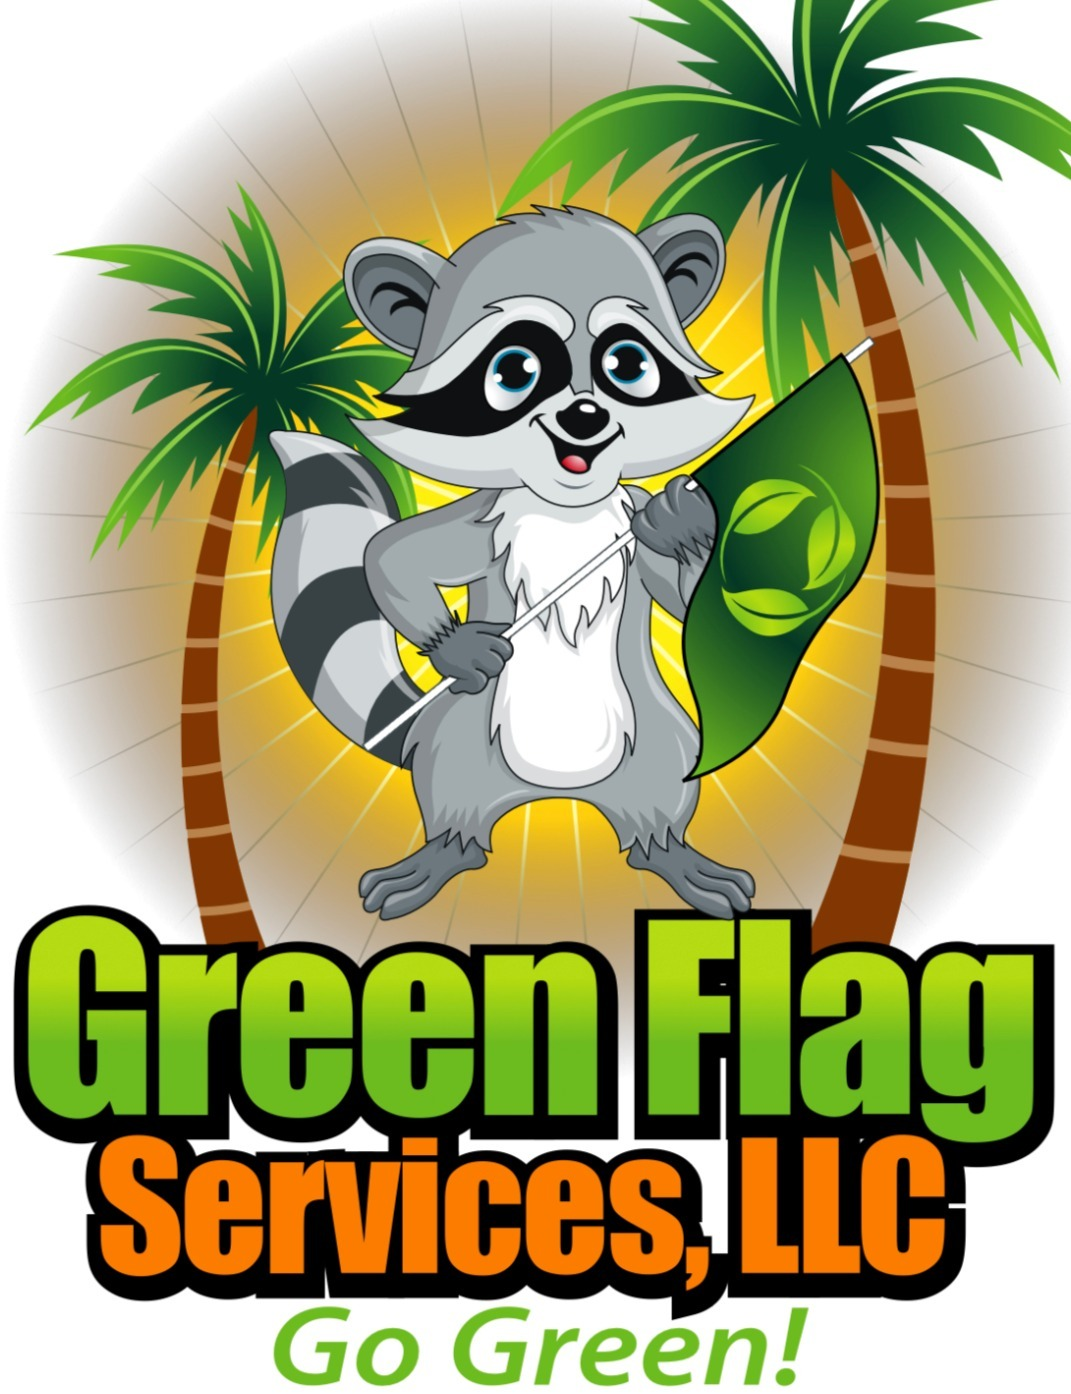 green flag services llc logo